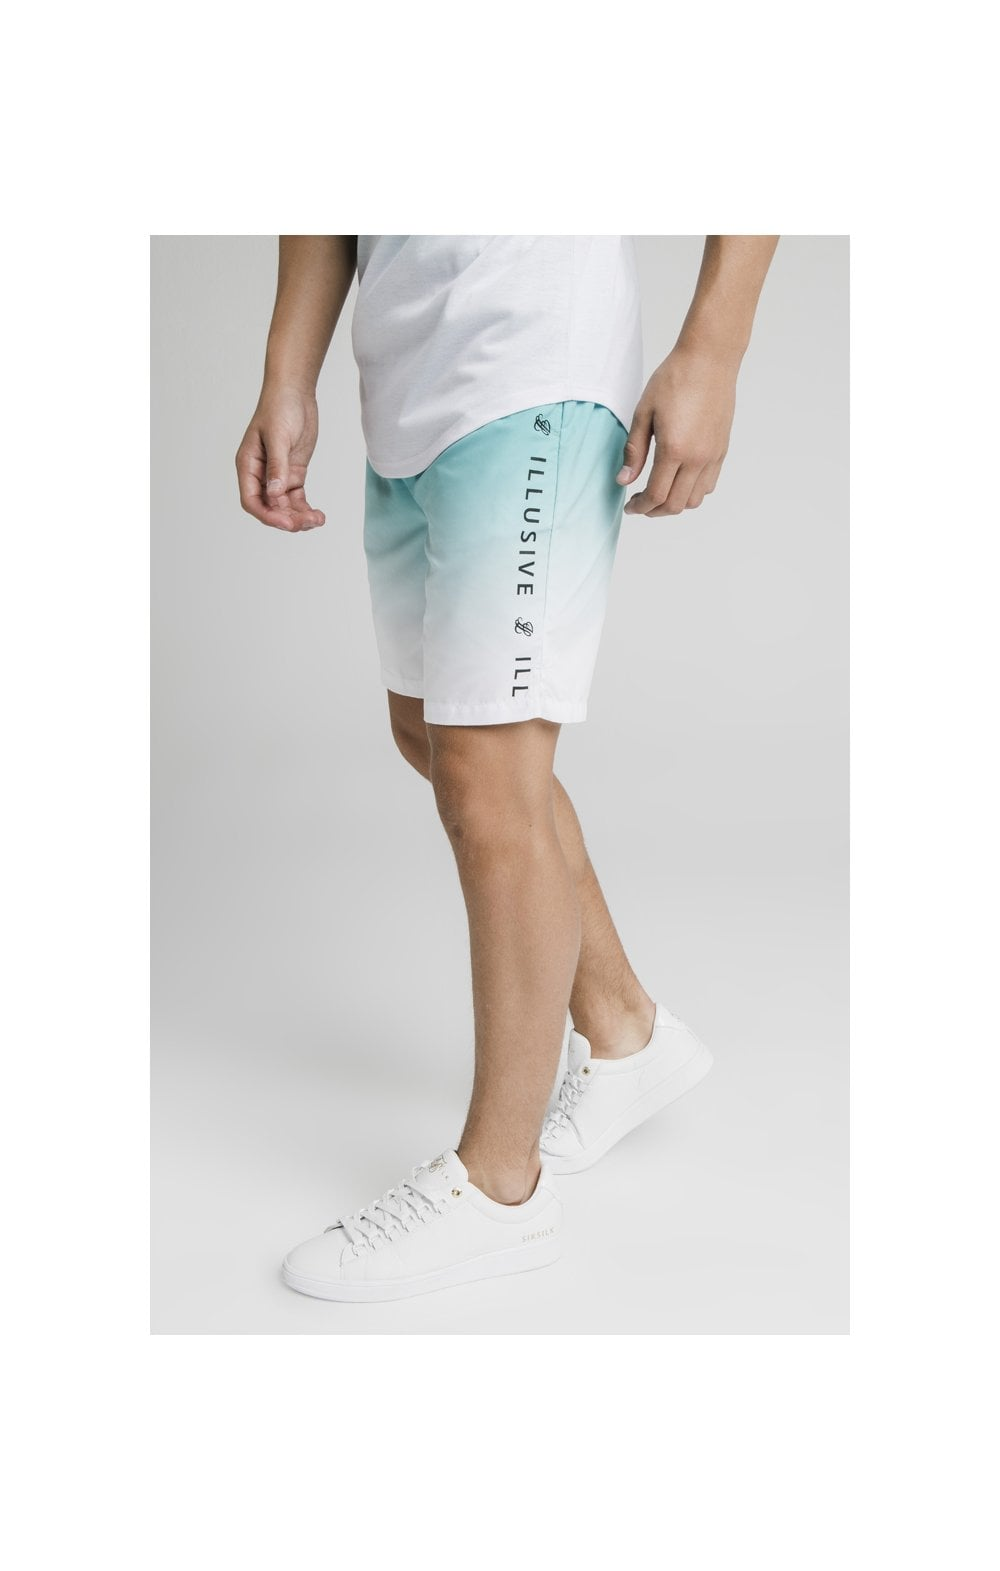 Illusive London Fade Swim Shorts - Teal & White